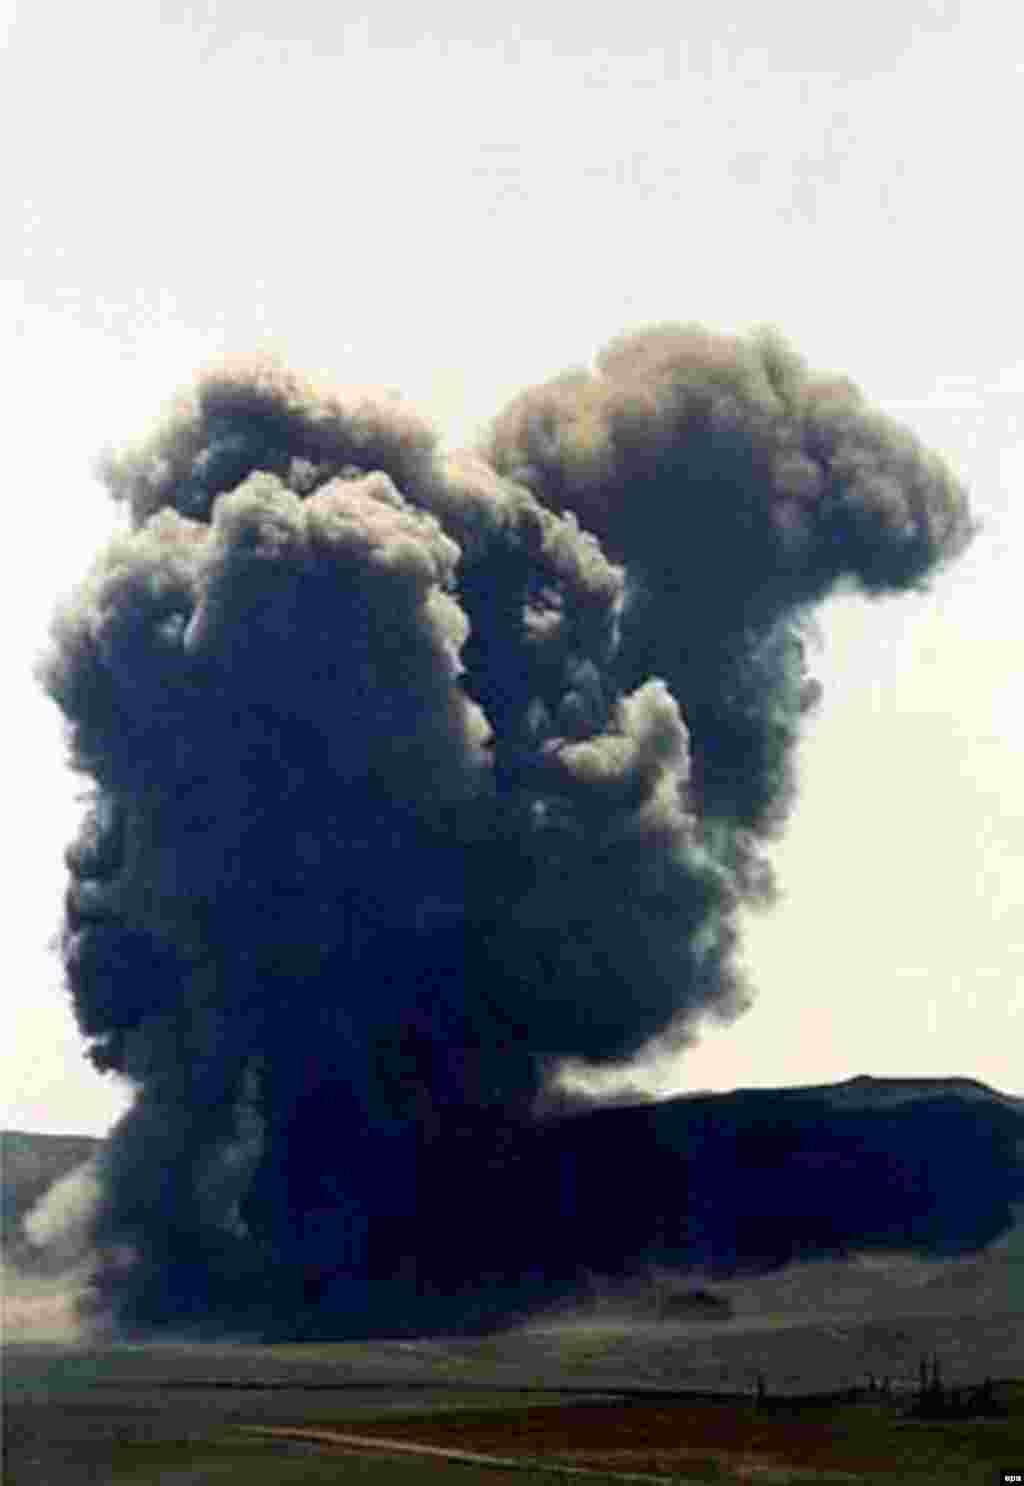 A giant cloud of black smoke arises as Kazakhstan's last nuclear weapons test site is put out of action with a bang in July 2000. The former Soviet republic blew up the sole remaining test tunnel at Semipalatinsk with 90 tons of explosives.